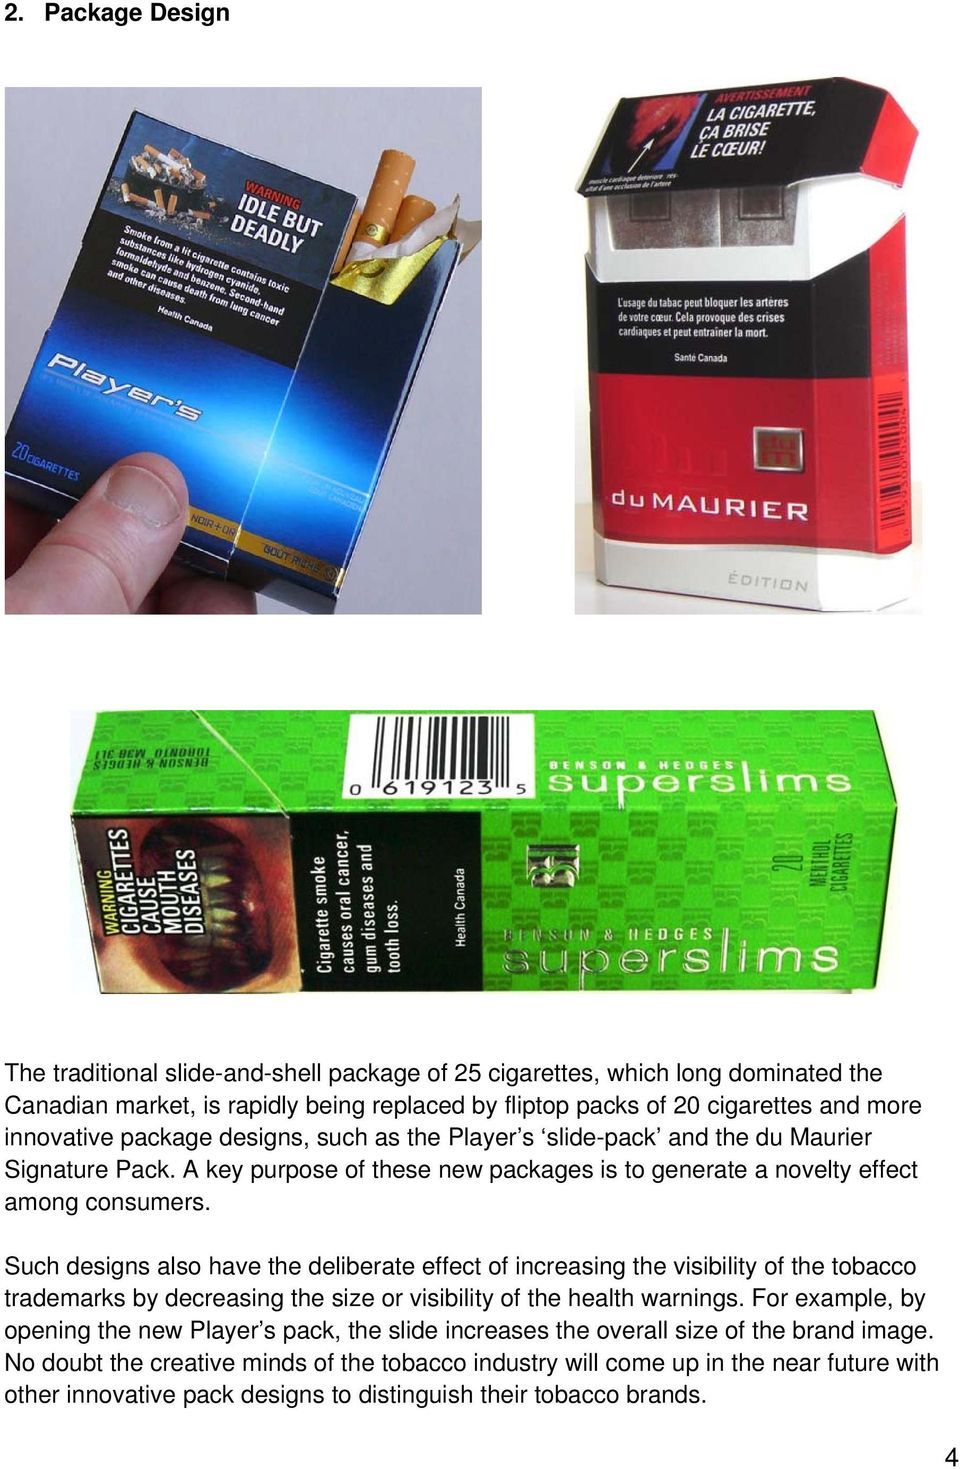 Such designs also have the deliberate effect of increasing the visibility of the tobacco trademarks by decreasing the size or visibility of the health warnings.